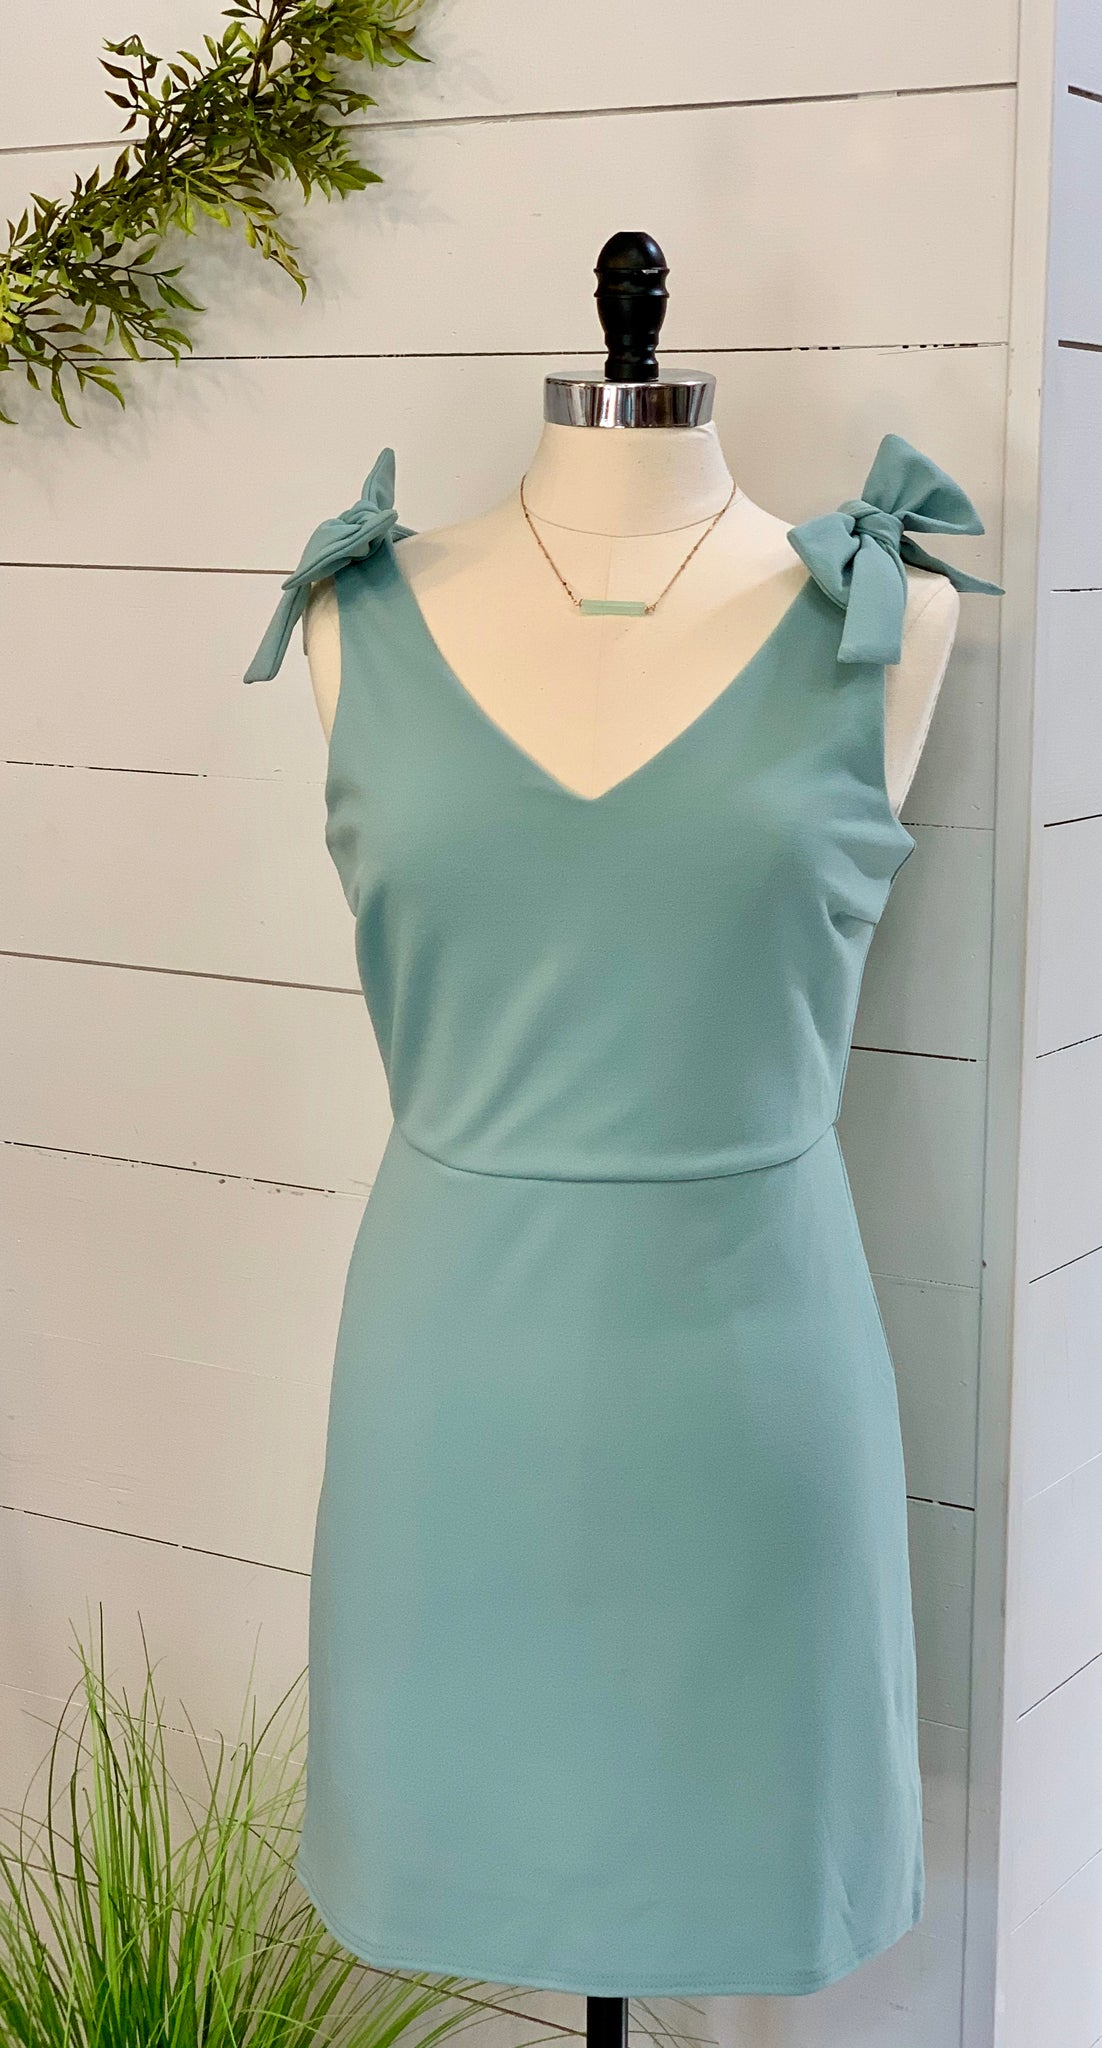 Knit dress with tie shoulder - Caroline's Boutique Indiana